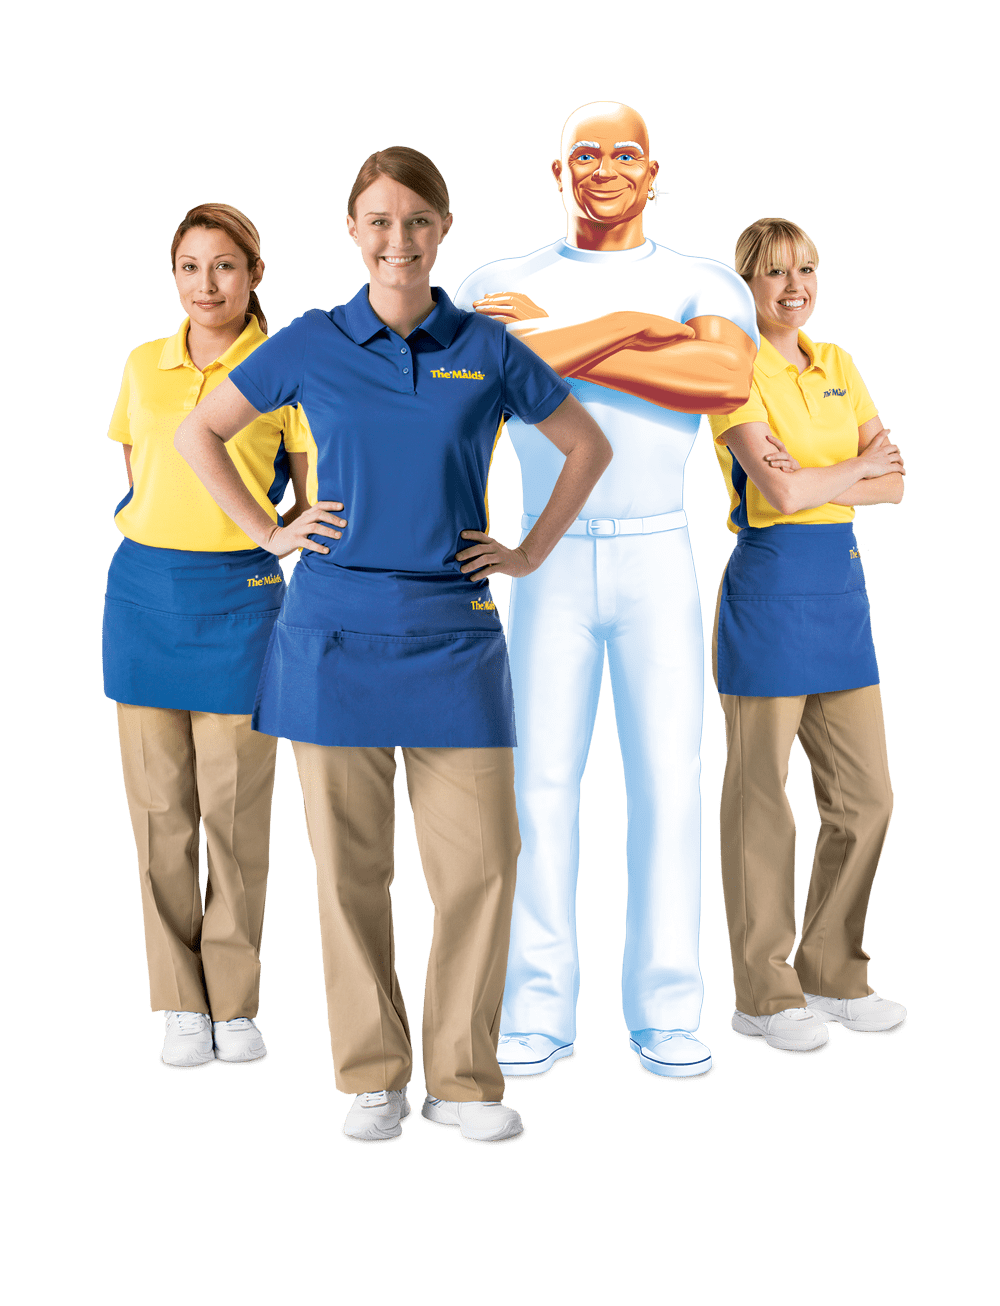 The Maids House Cleaning - The Maids in Southern Palm Beach County and Boca Raton Home Cleaning